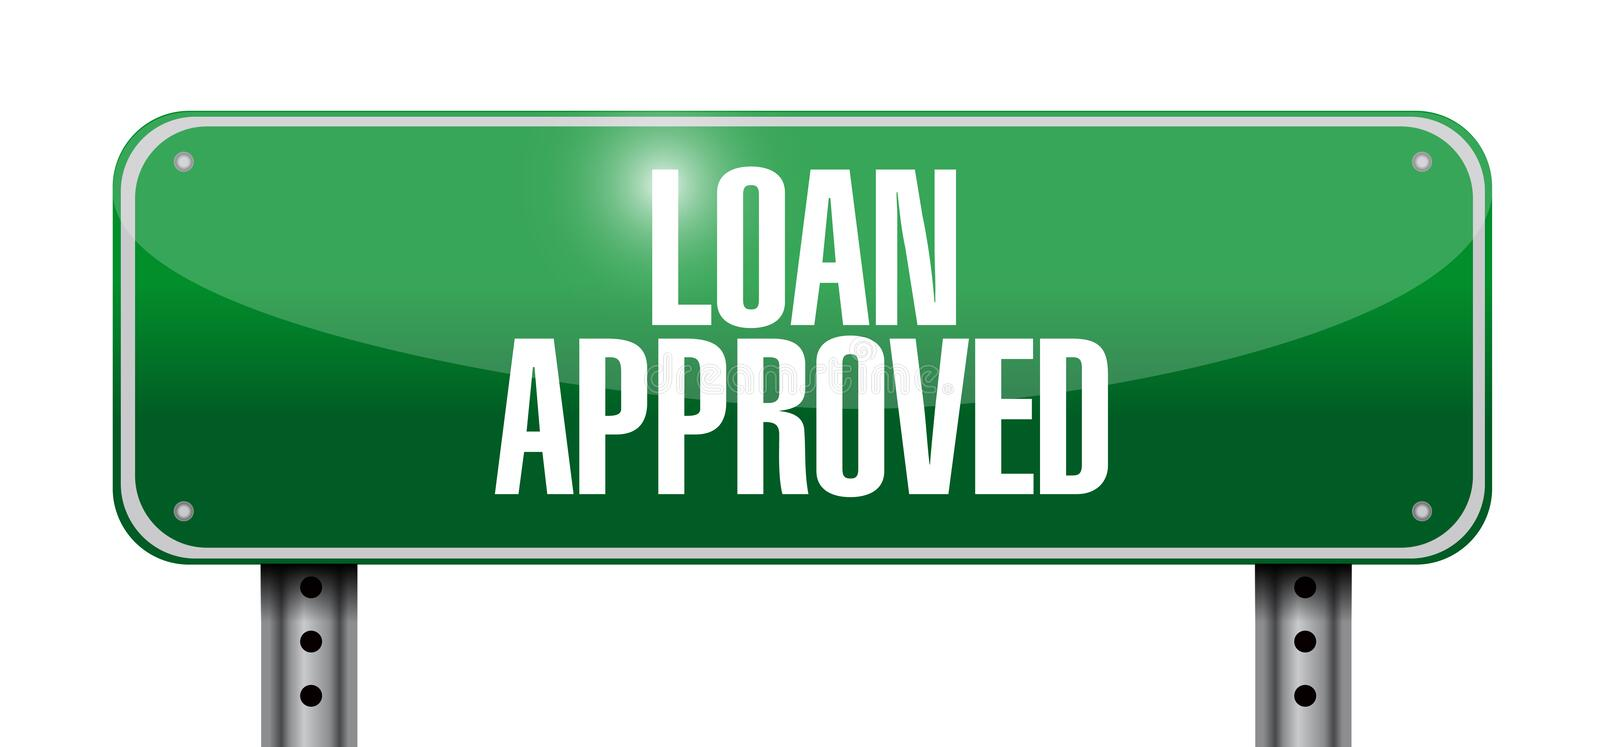 Loan approved sign illustration design vector illustration